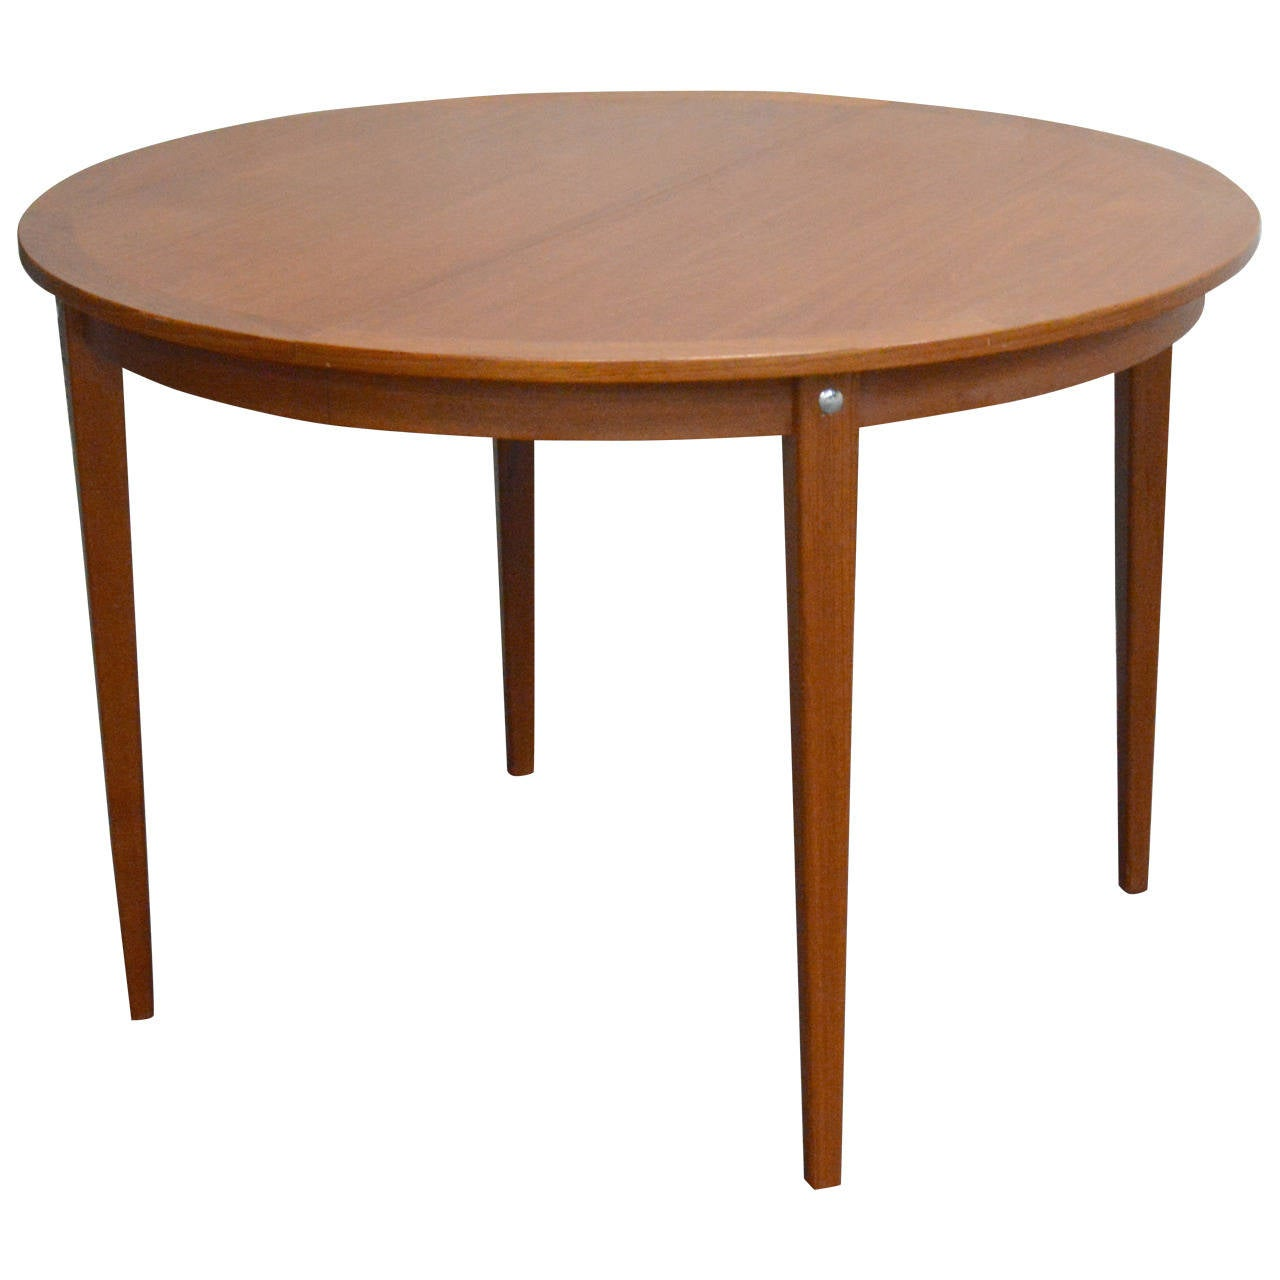 Mid century modern round swedish teak dining table for for Mid century modern dining table